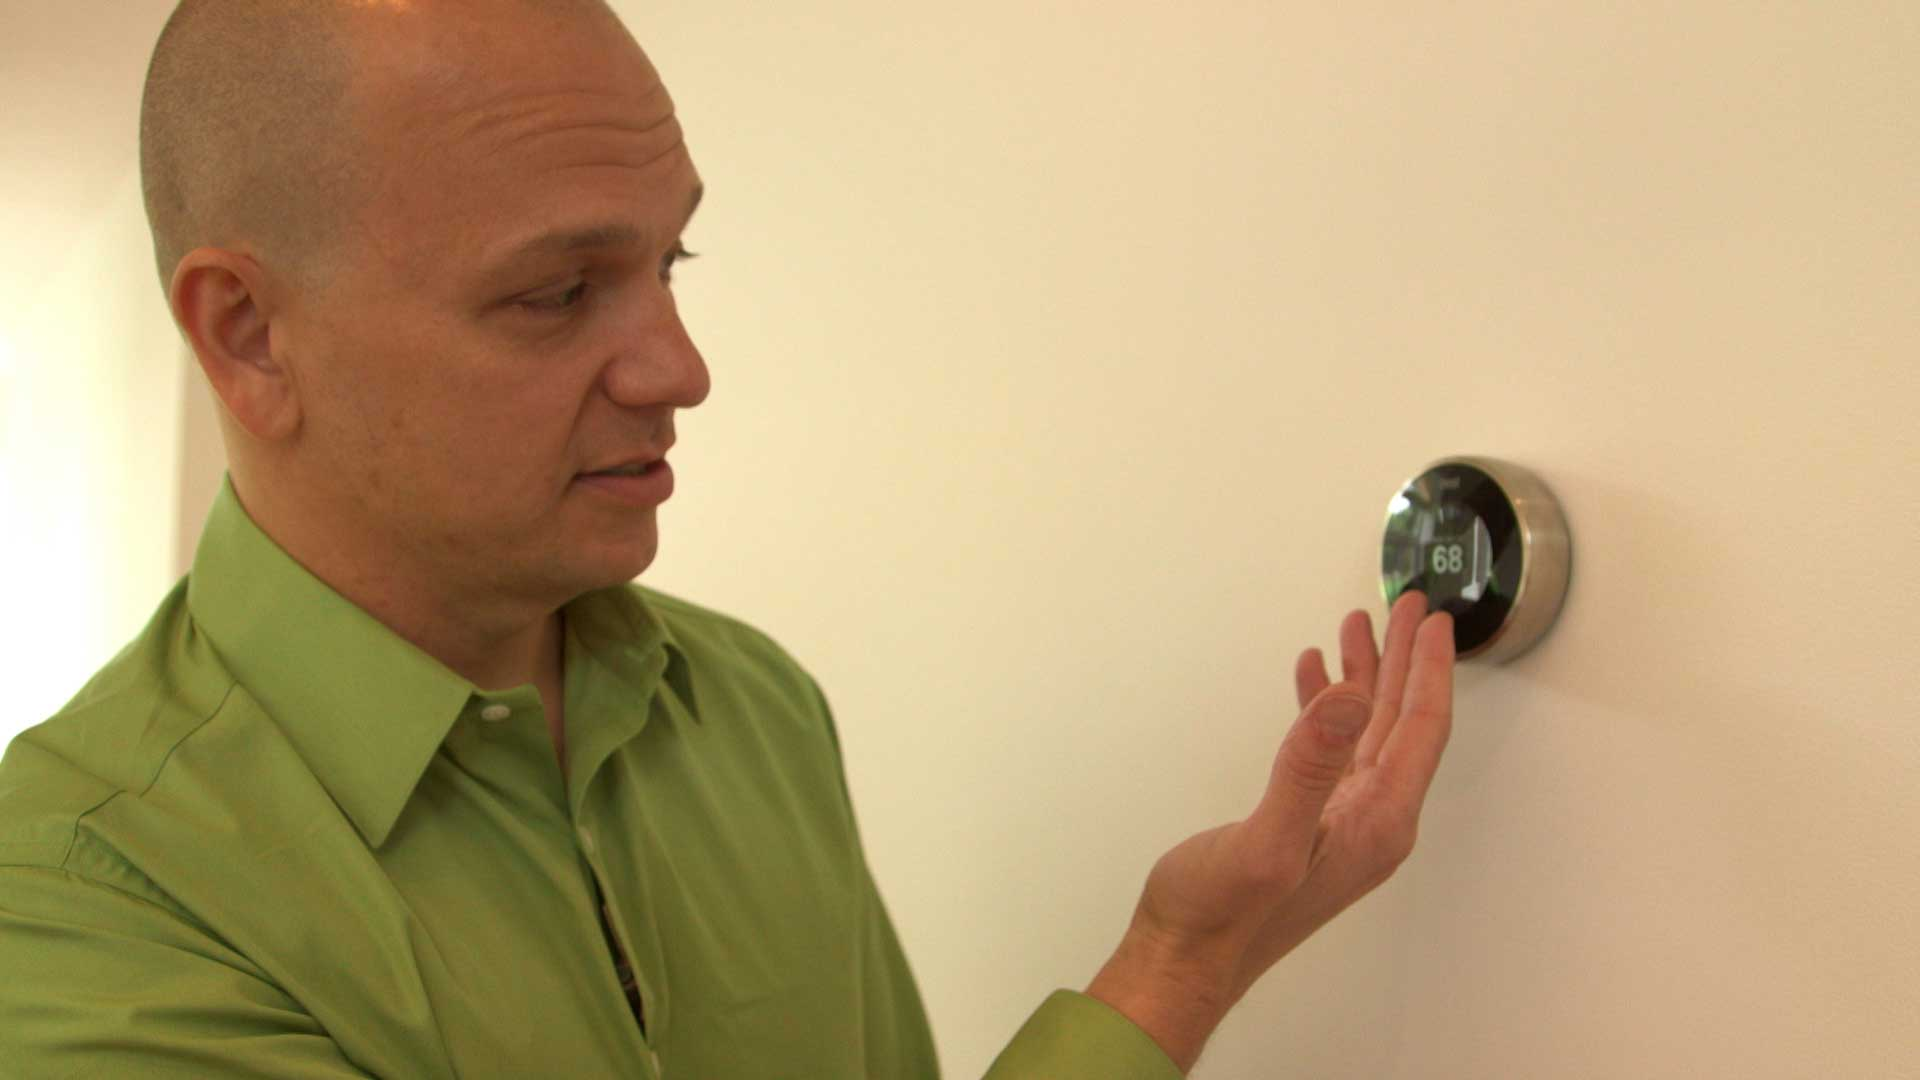 Can a thermostat save the planet?